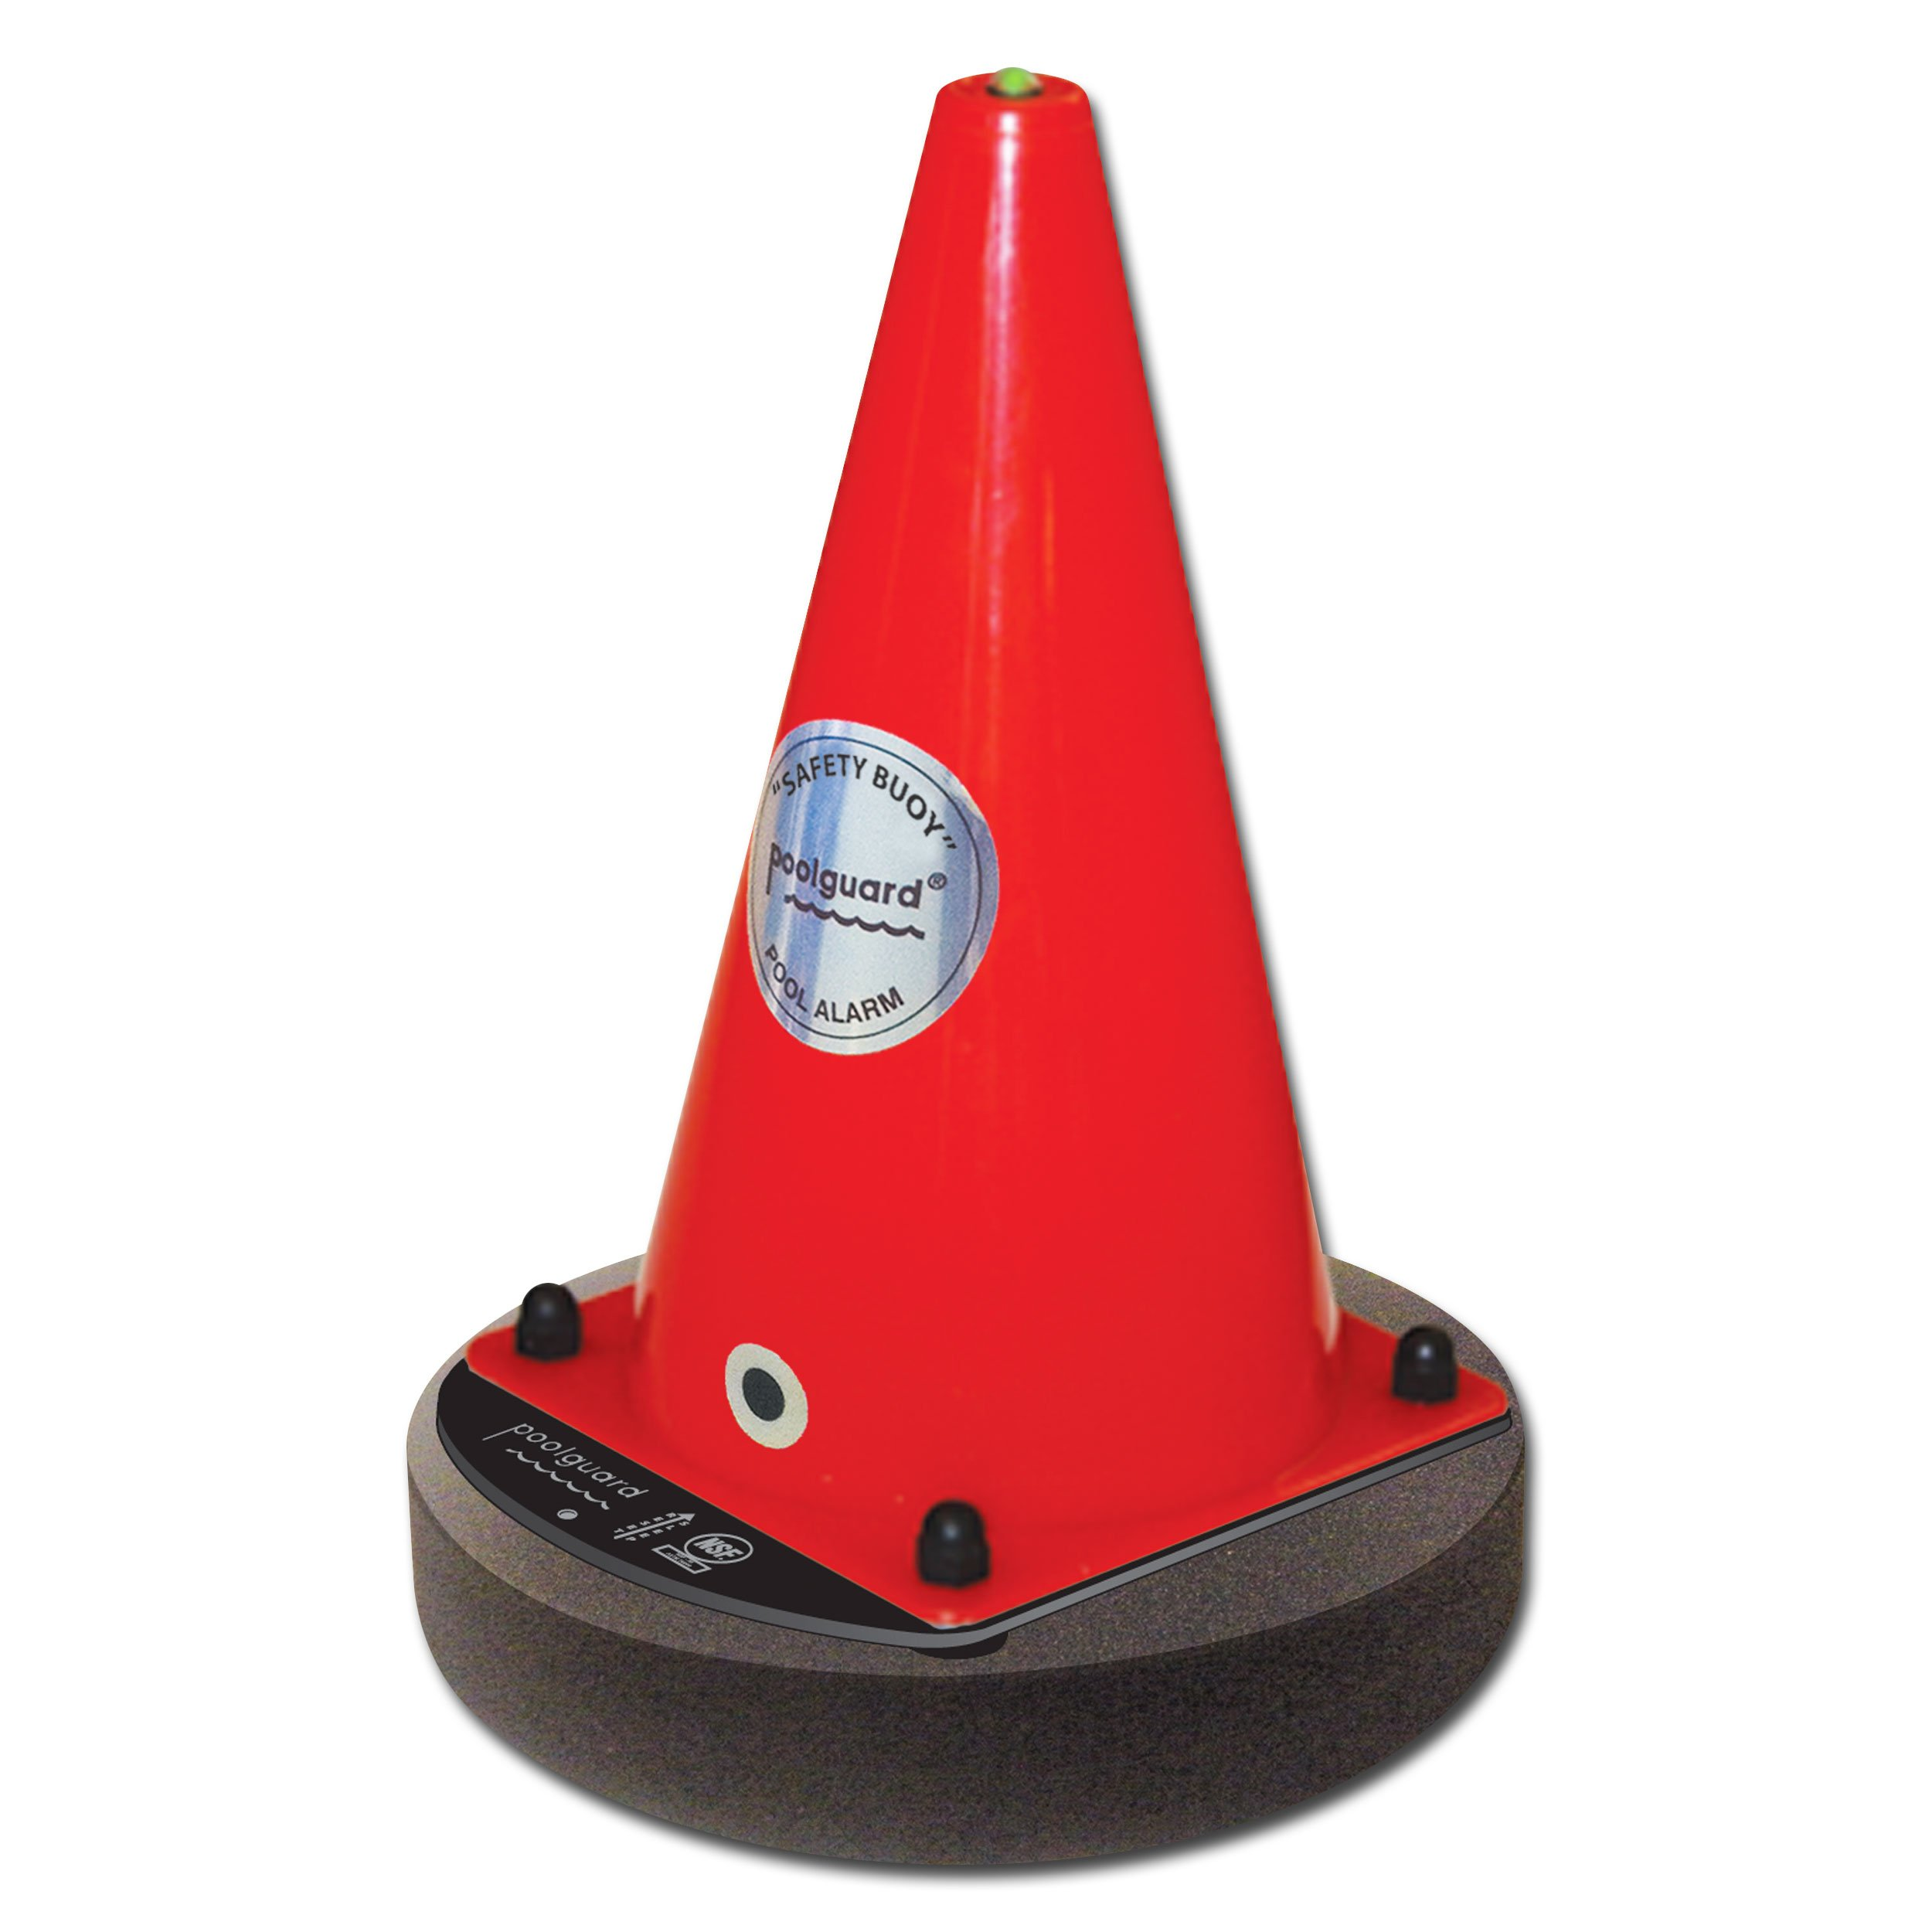 Poolguard PGRMSB Safety Buoy Above Ground Pool or Spa Alarm by Poolguard